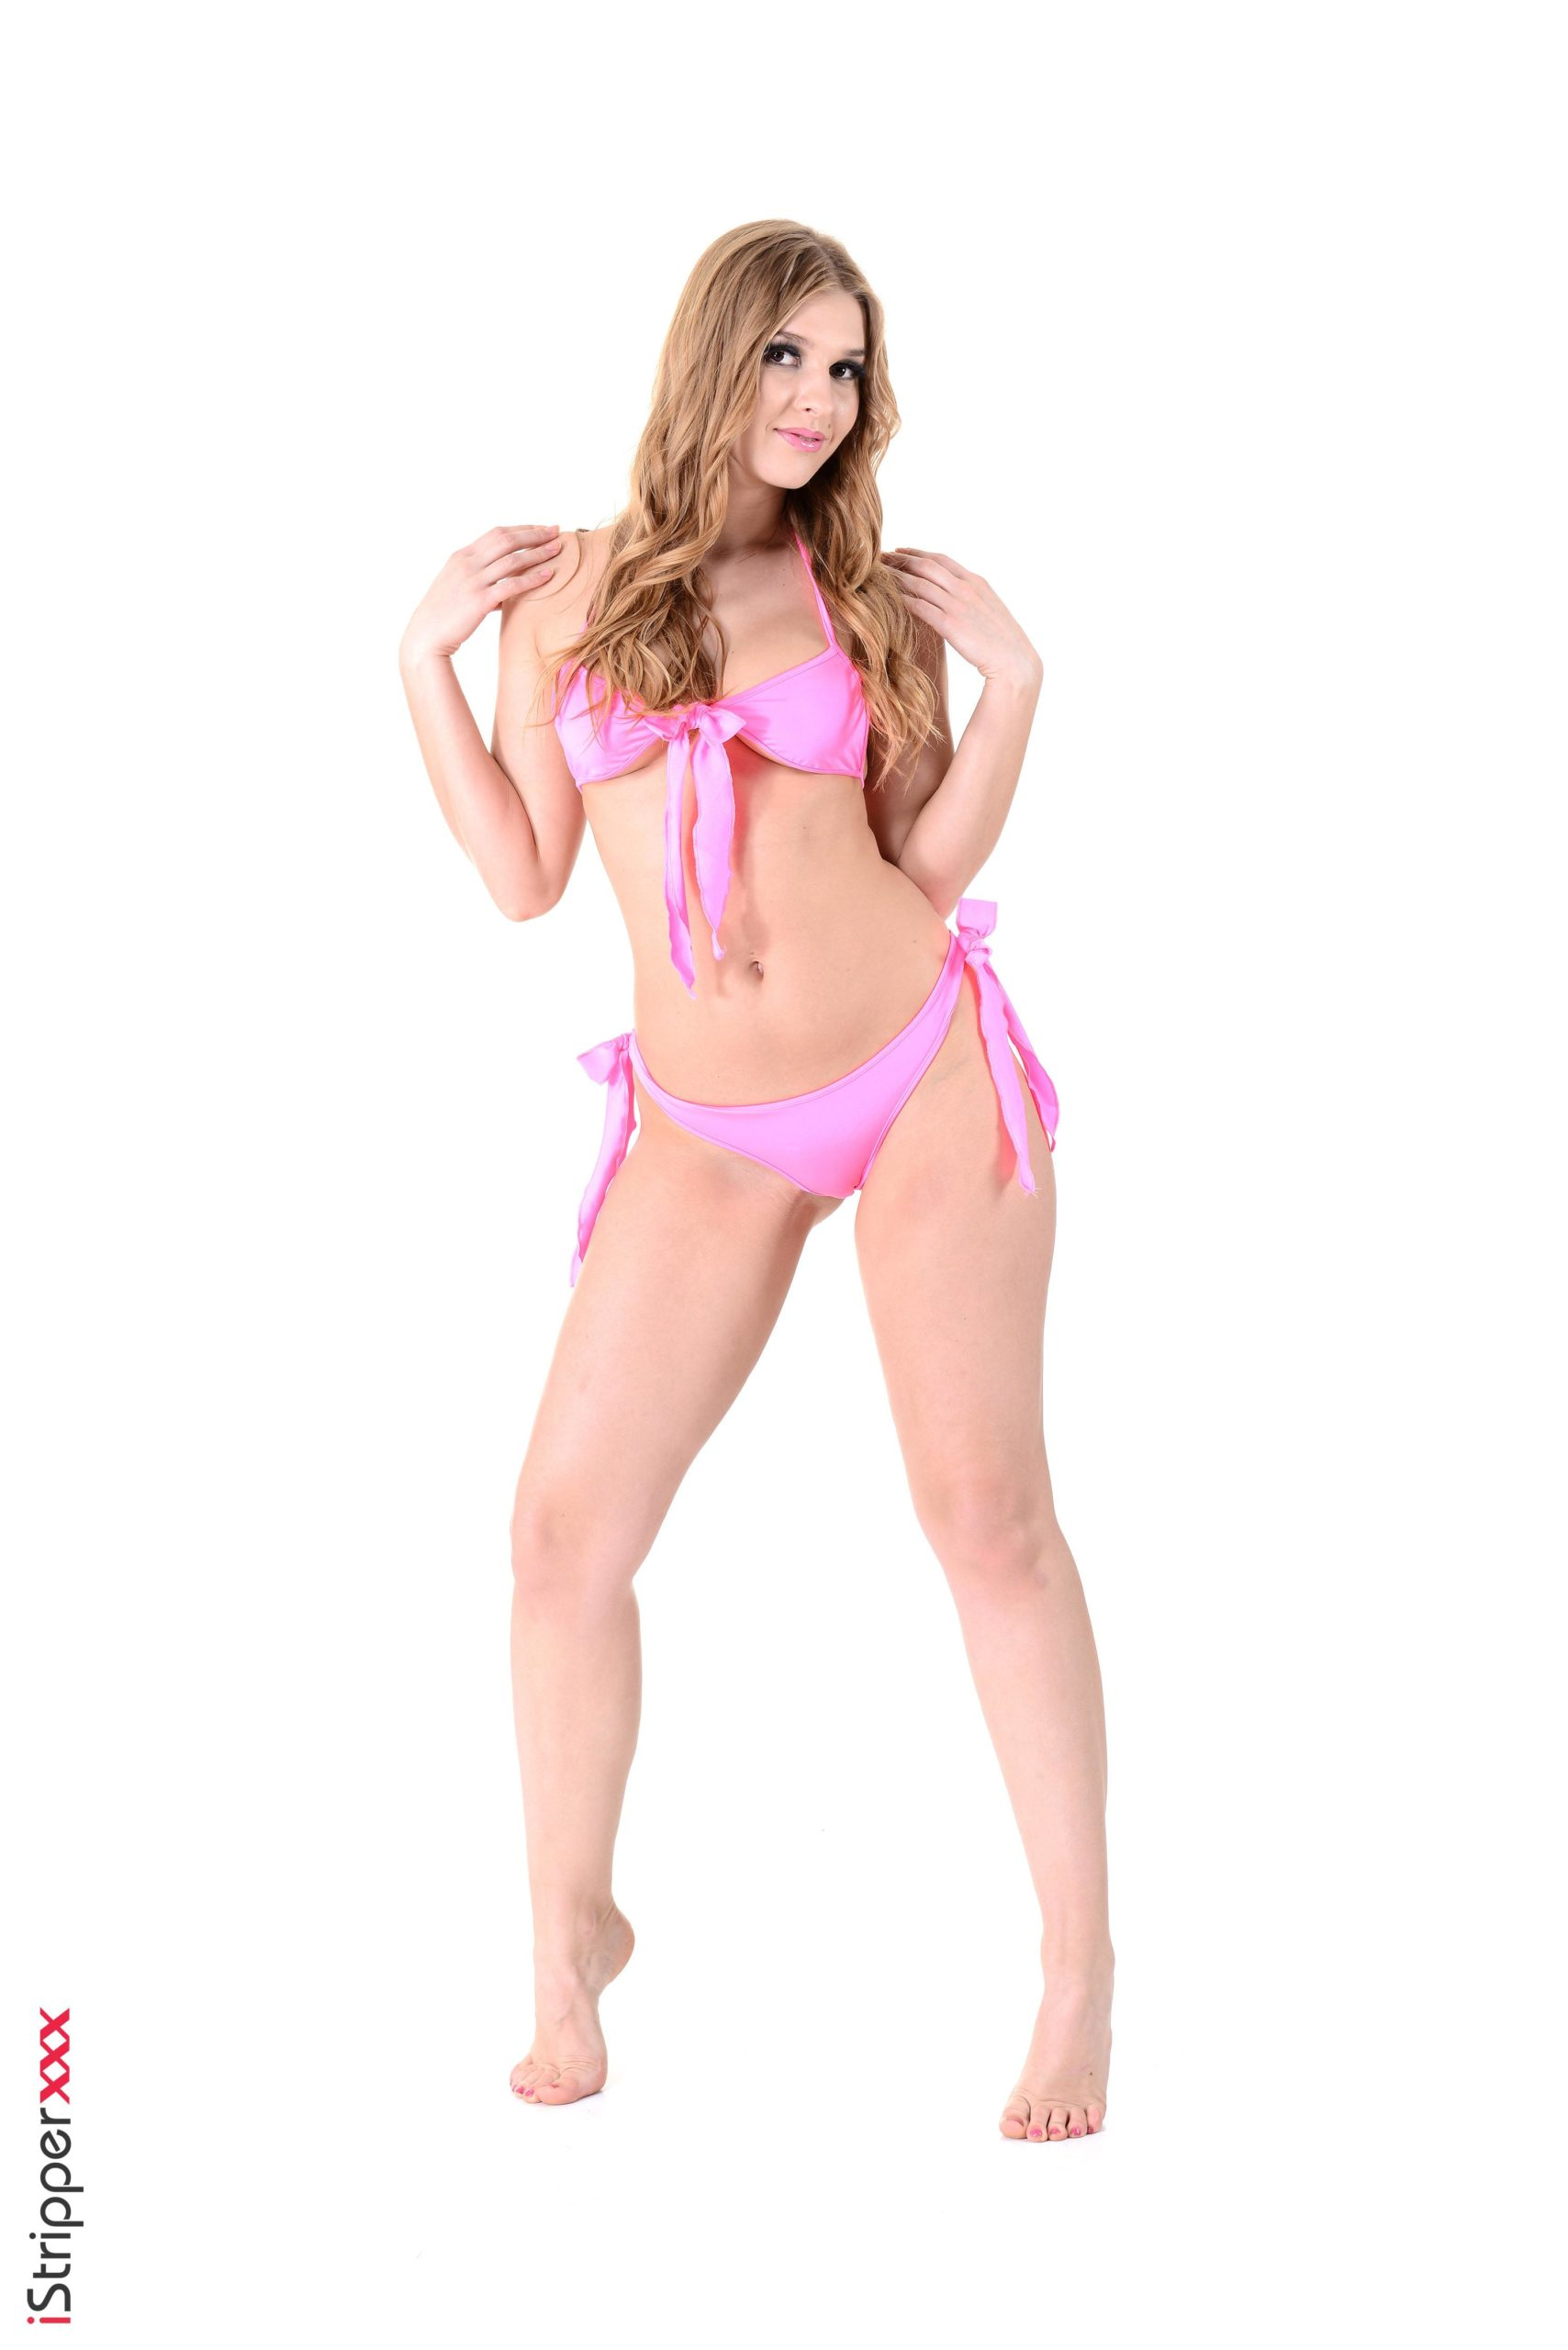 Alina N is the girl of the day for June 01, 2021